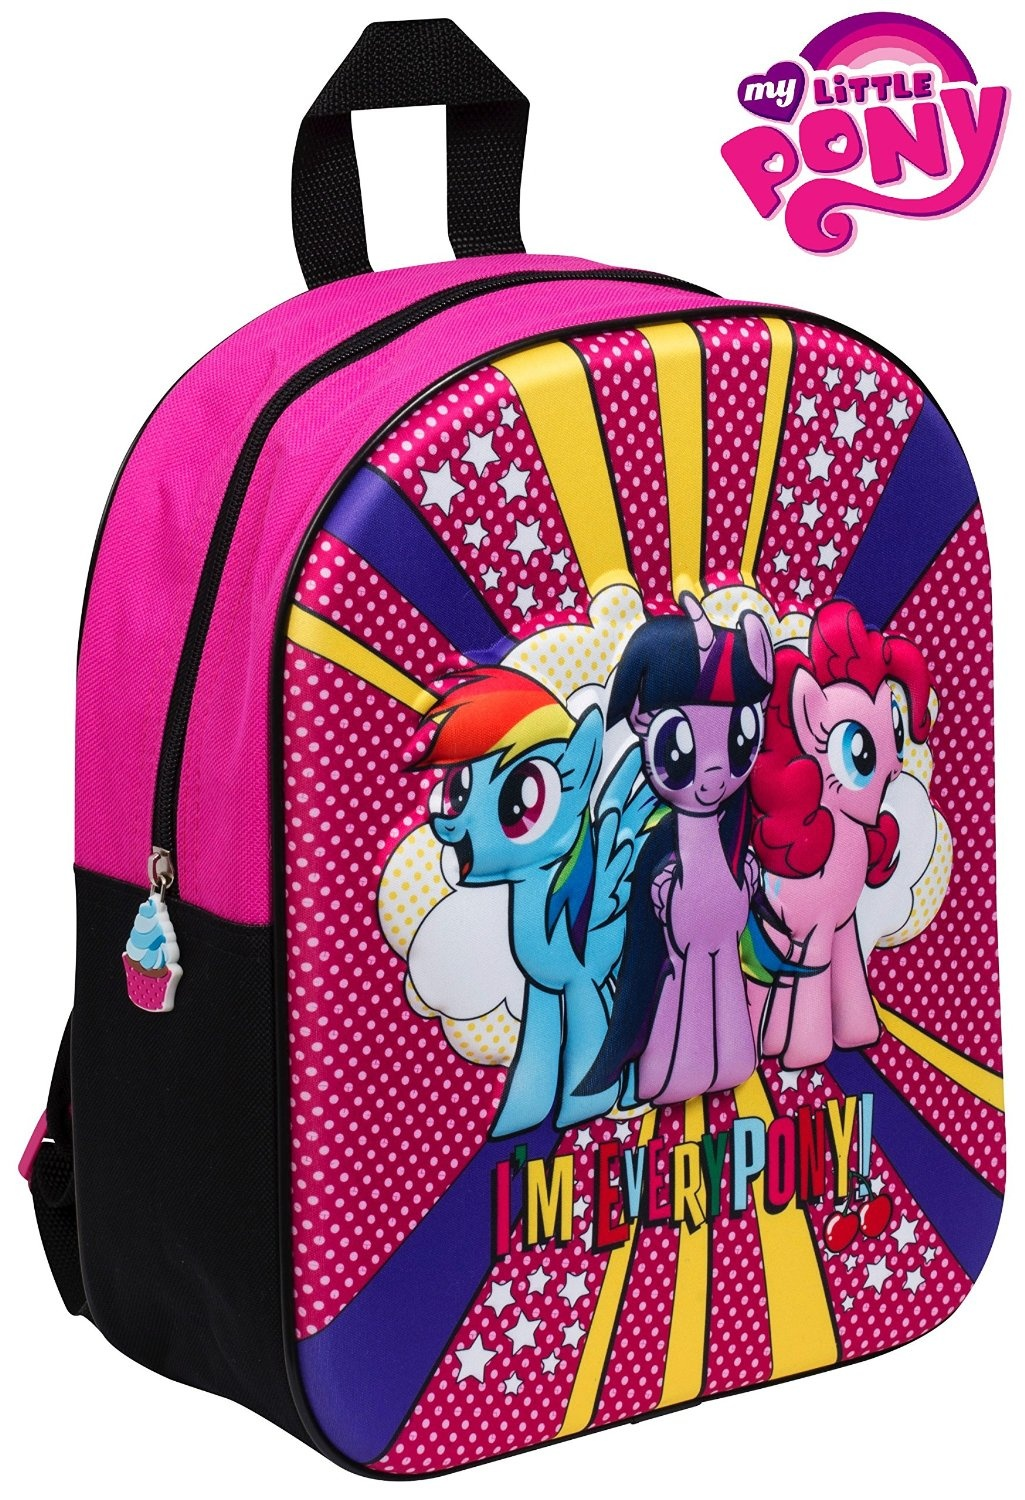 7a0ea48e7d My Little Pony Backpack Toys  Buy Online from Fishpond.com.au